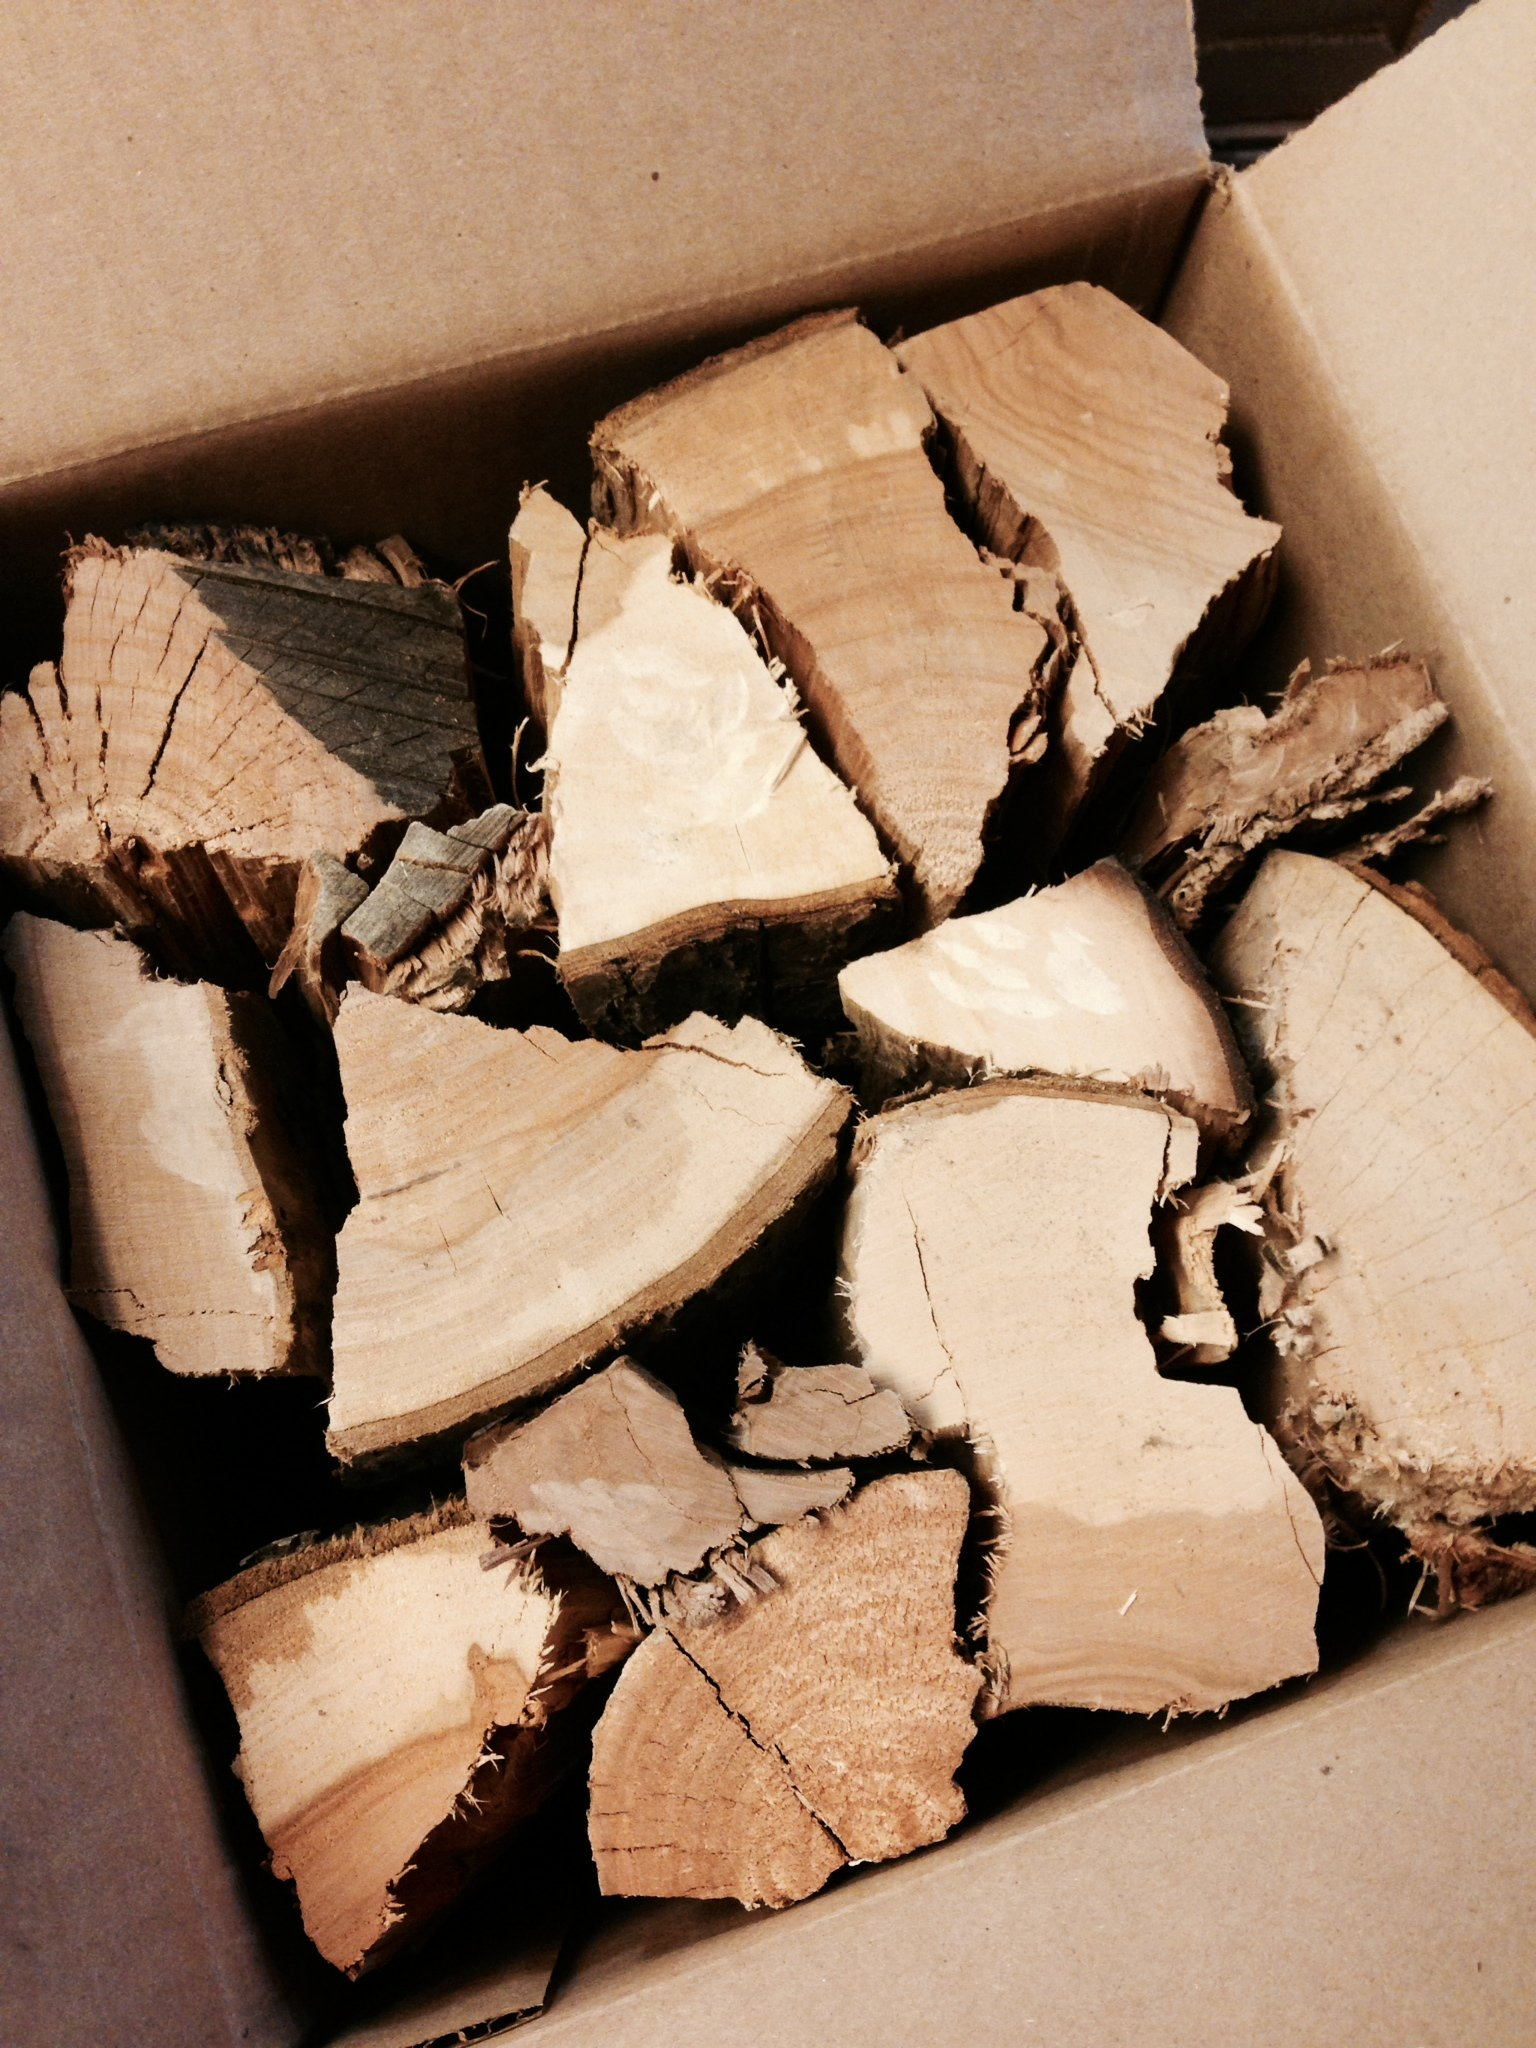 J.C.'s Smoking Wood Sticks - 730 Cu Inch Box - Oak by J.C.'s Smoking Wood Products